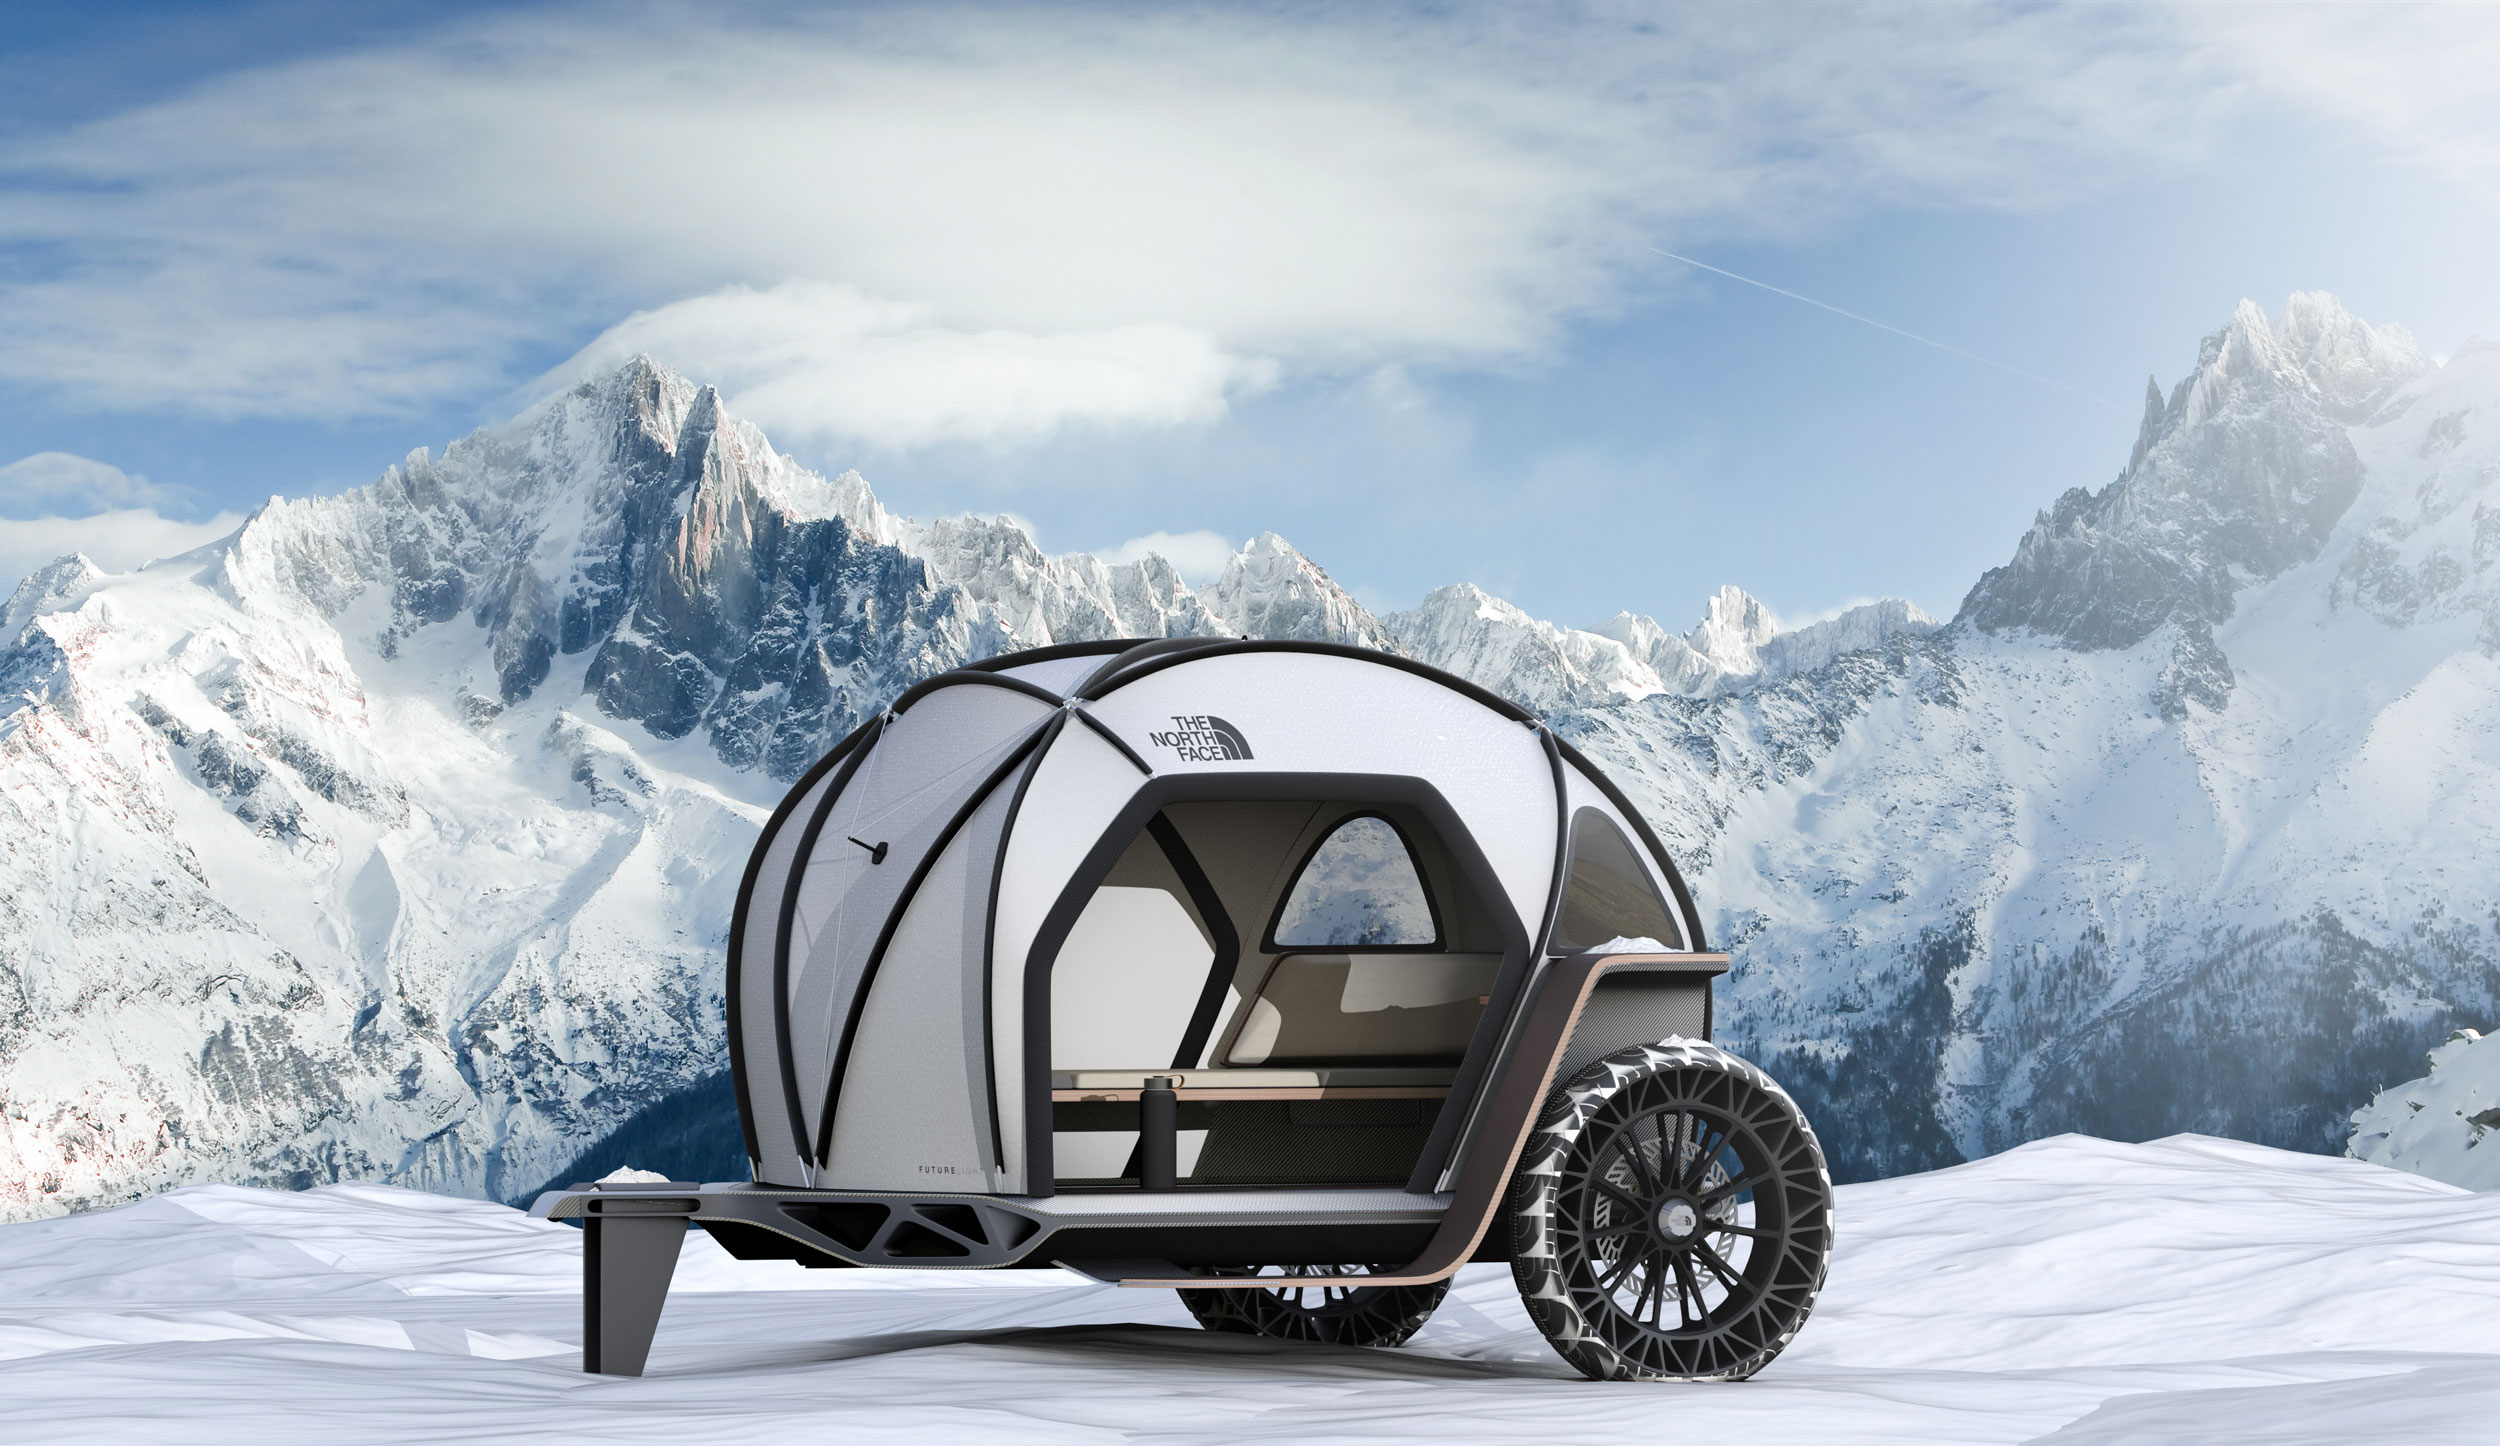 the north face camper in snowy mountains